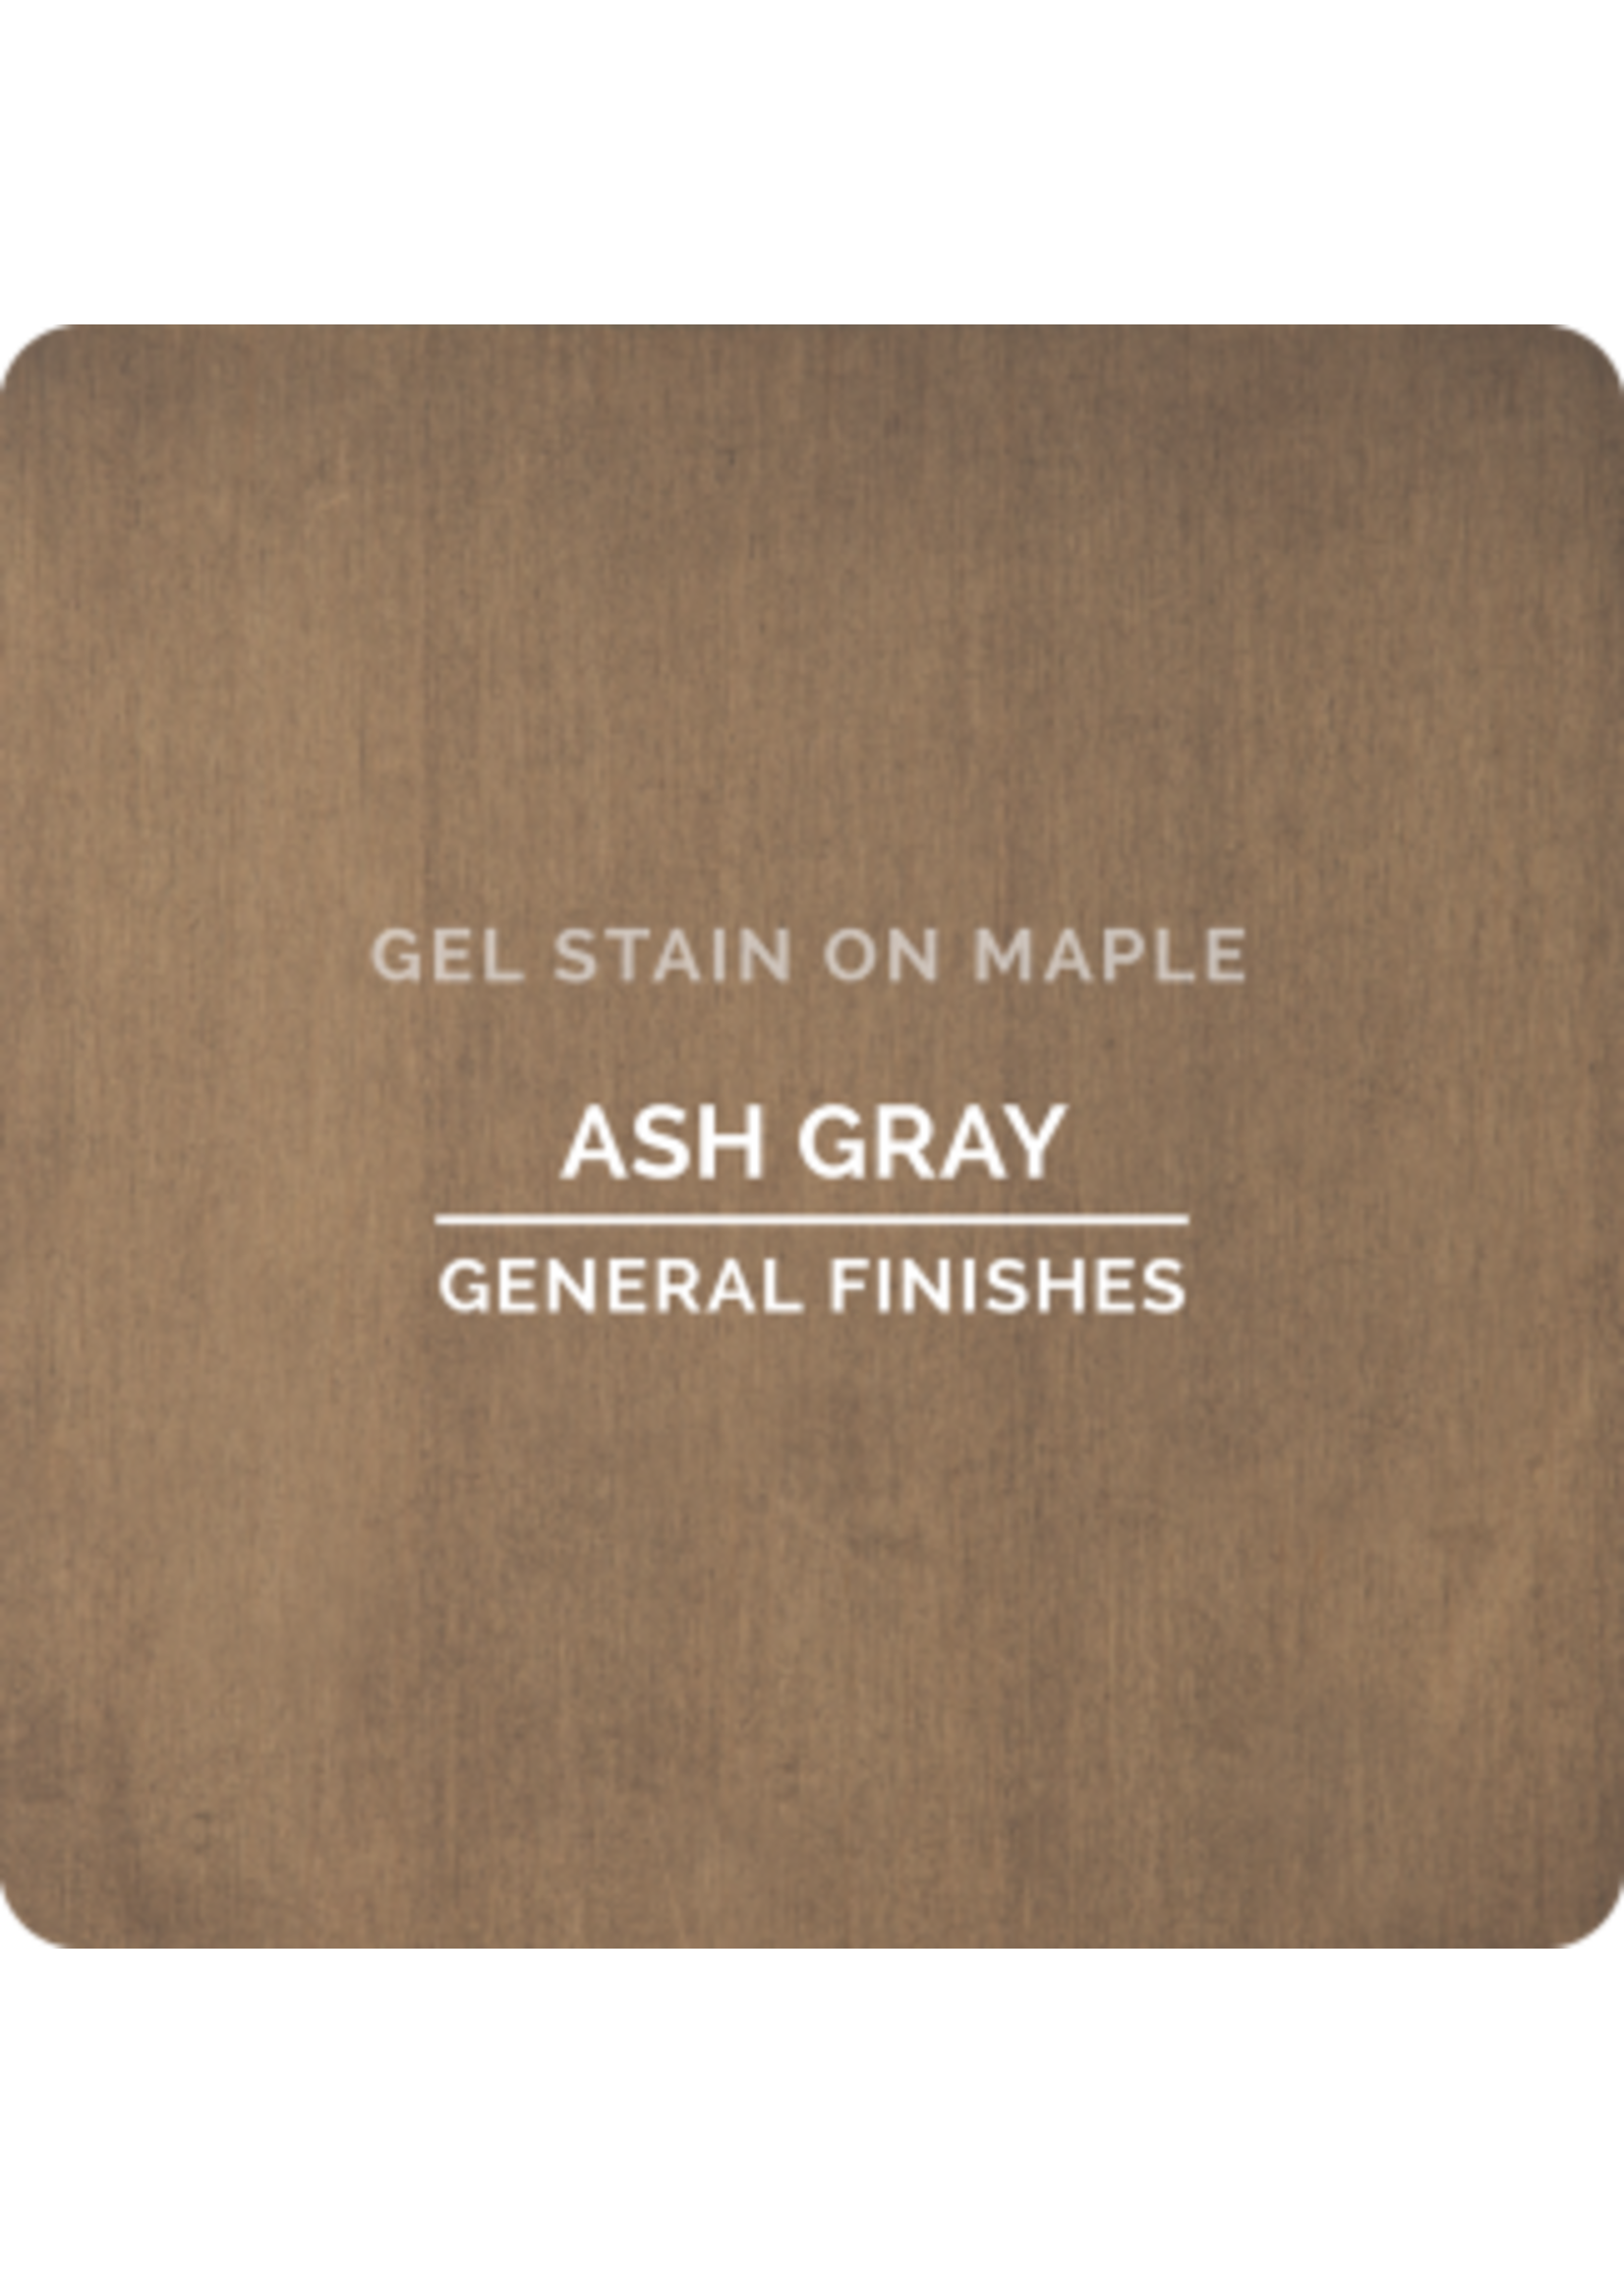 General Finishes Ash Gray General Finishes Gel Stain